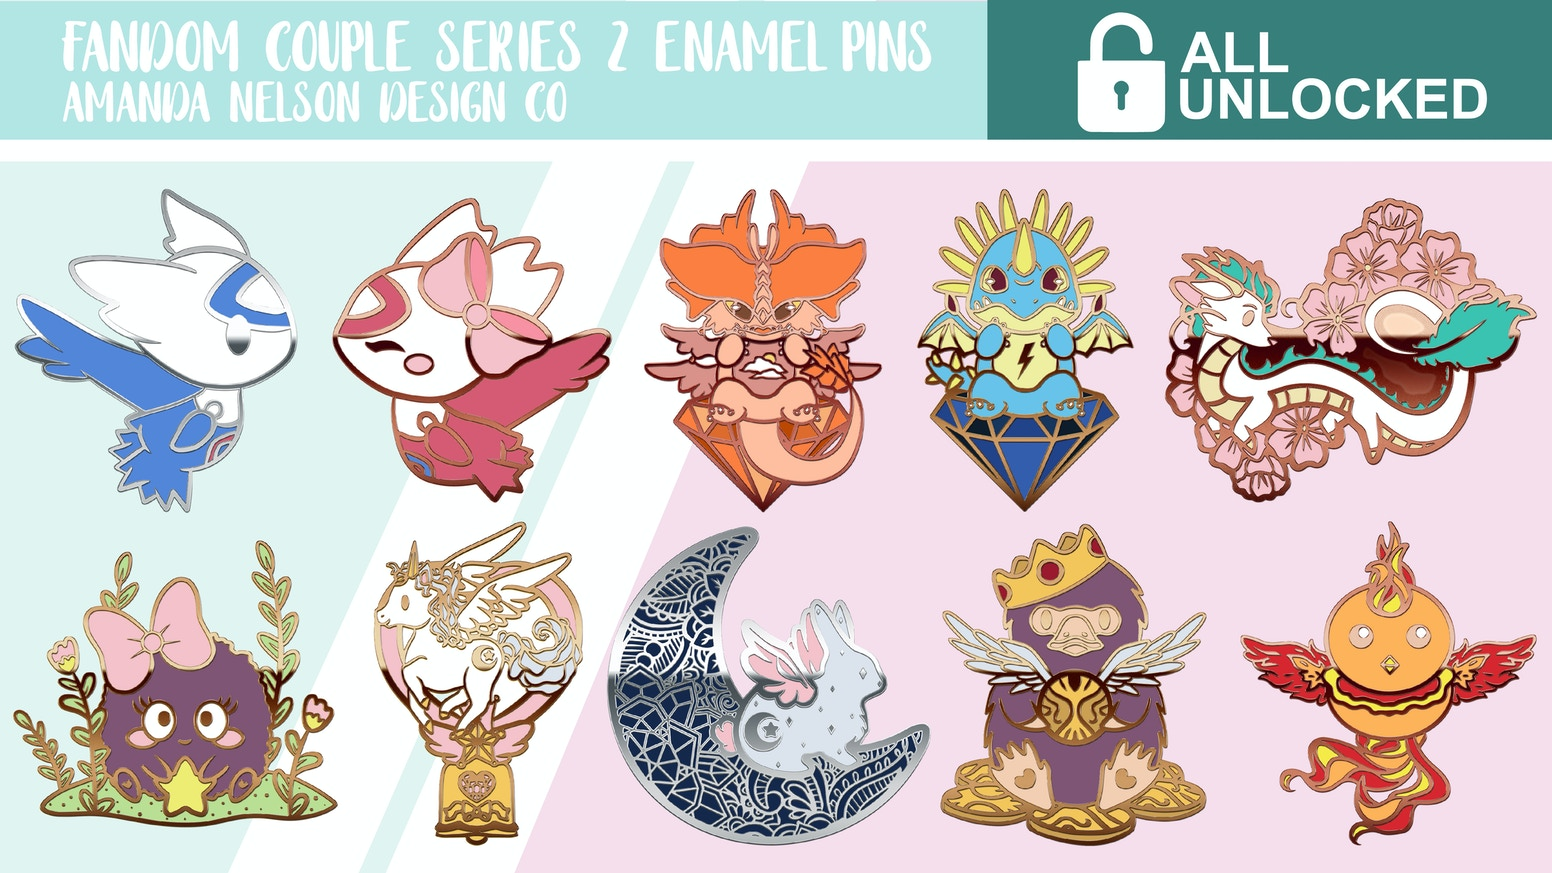 A set of enamel pins inspired by fandom couples